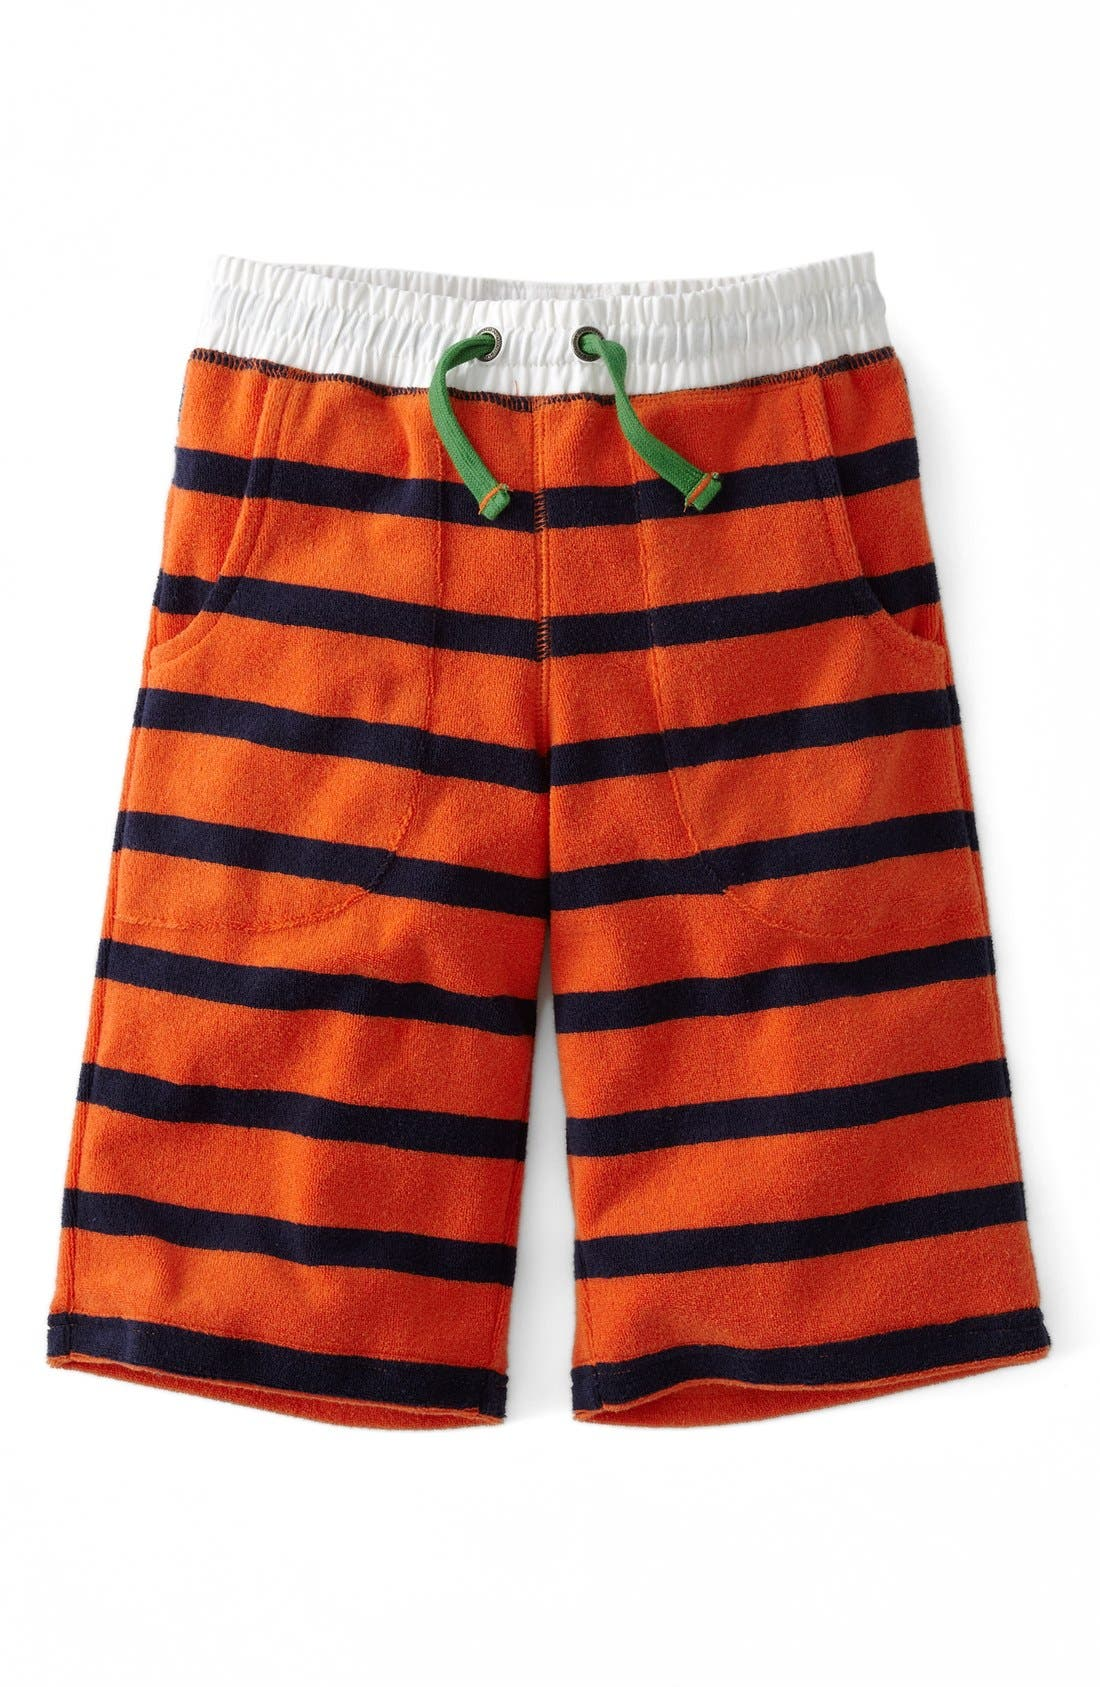 Main Image - Mini Boden Towelling Shorts (Toddler Boys, Little Boys & Big Boys)